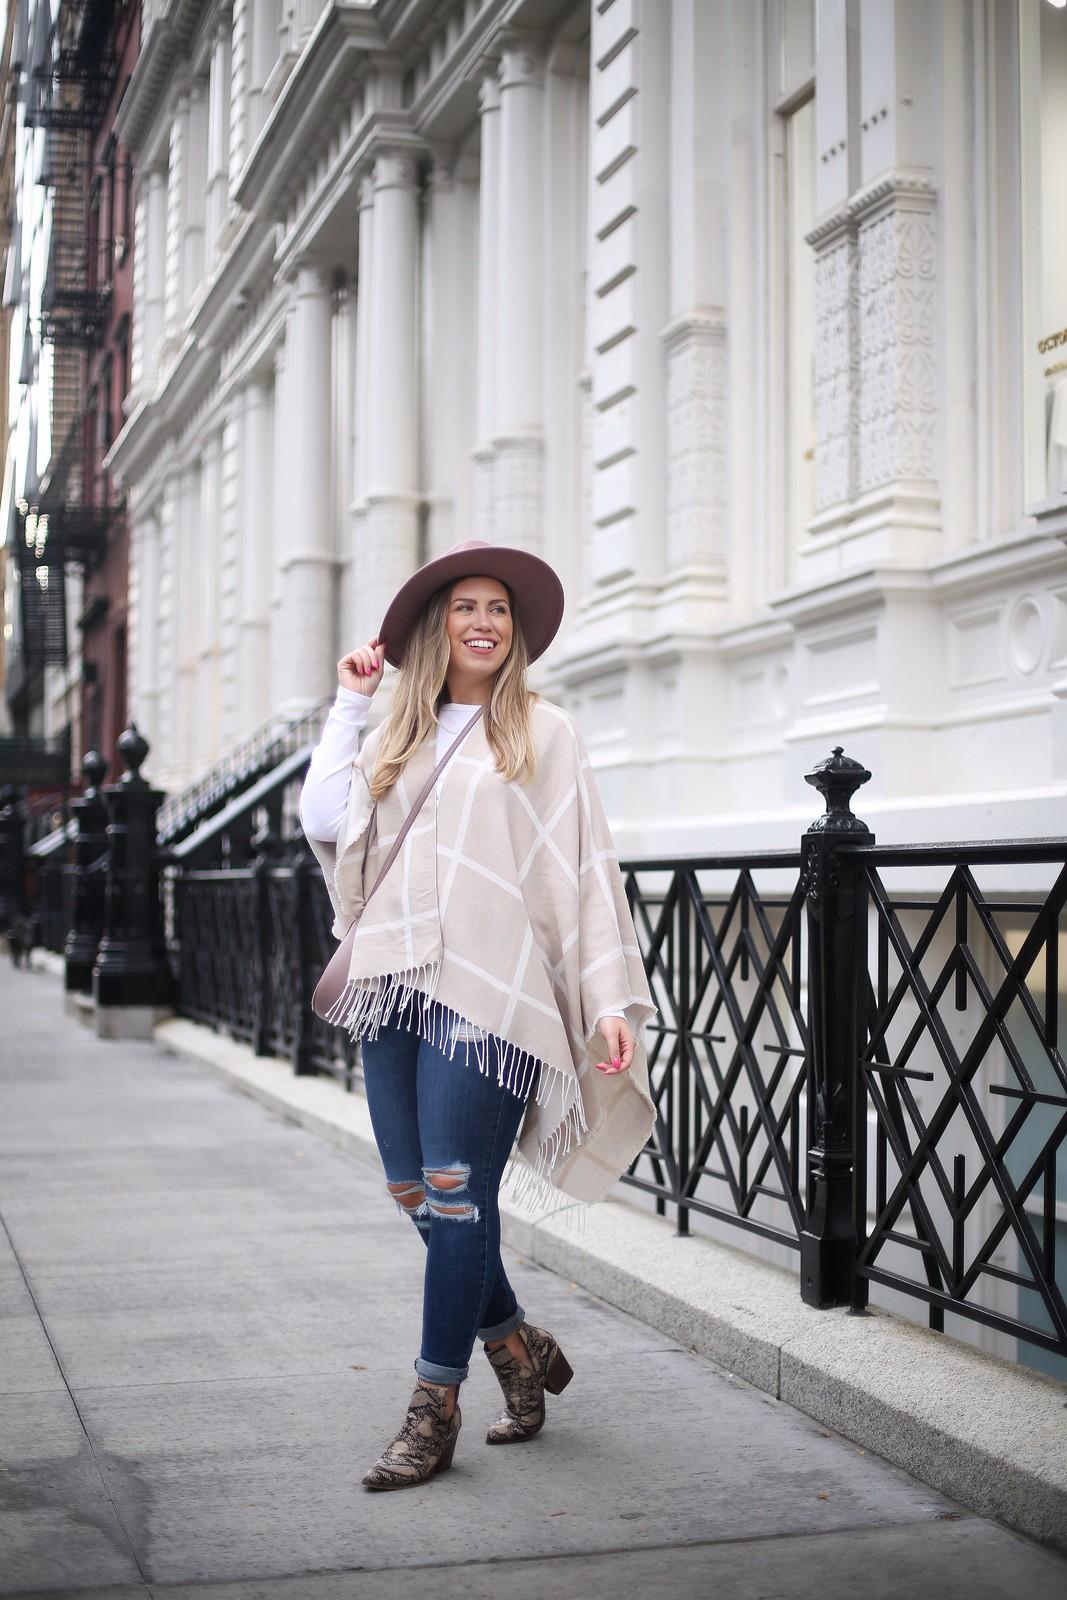 The Under $150 Fall Outfit Your Closet | New York City Street Style | Cream Plaid Cape | Levis 721 Jeans | Snake Skin Booties | Neutral Fall Look Inspiration